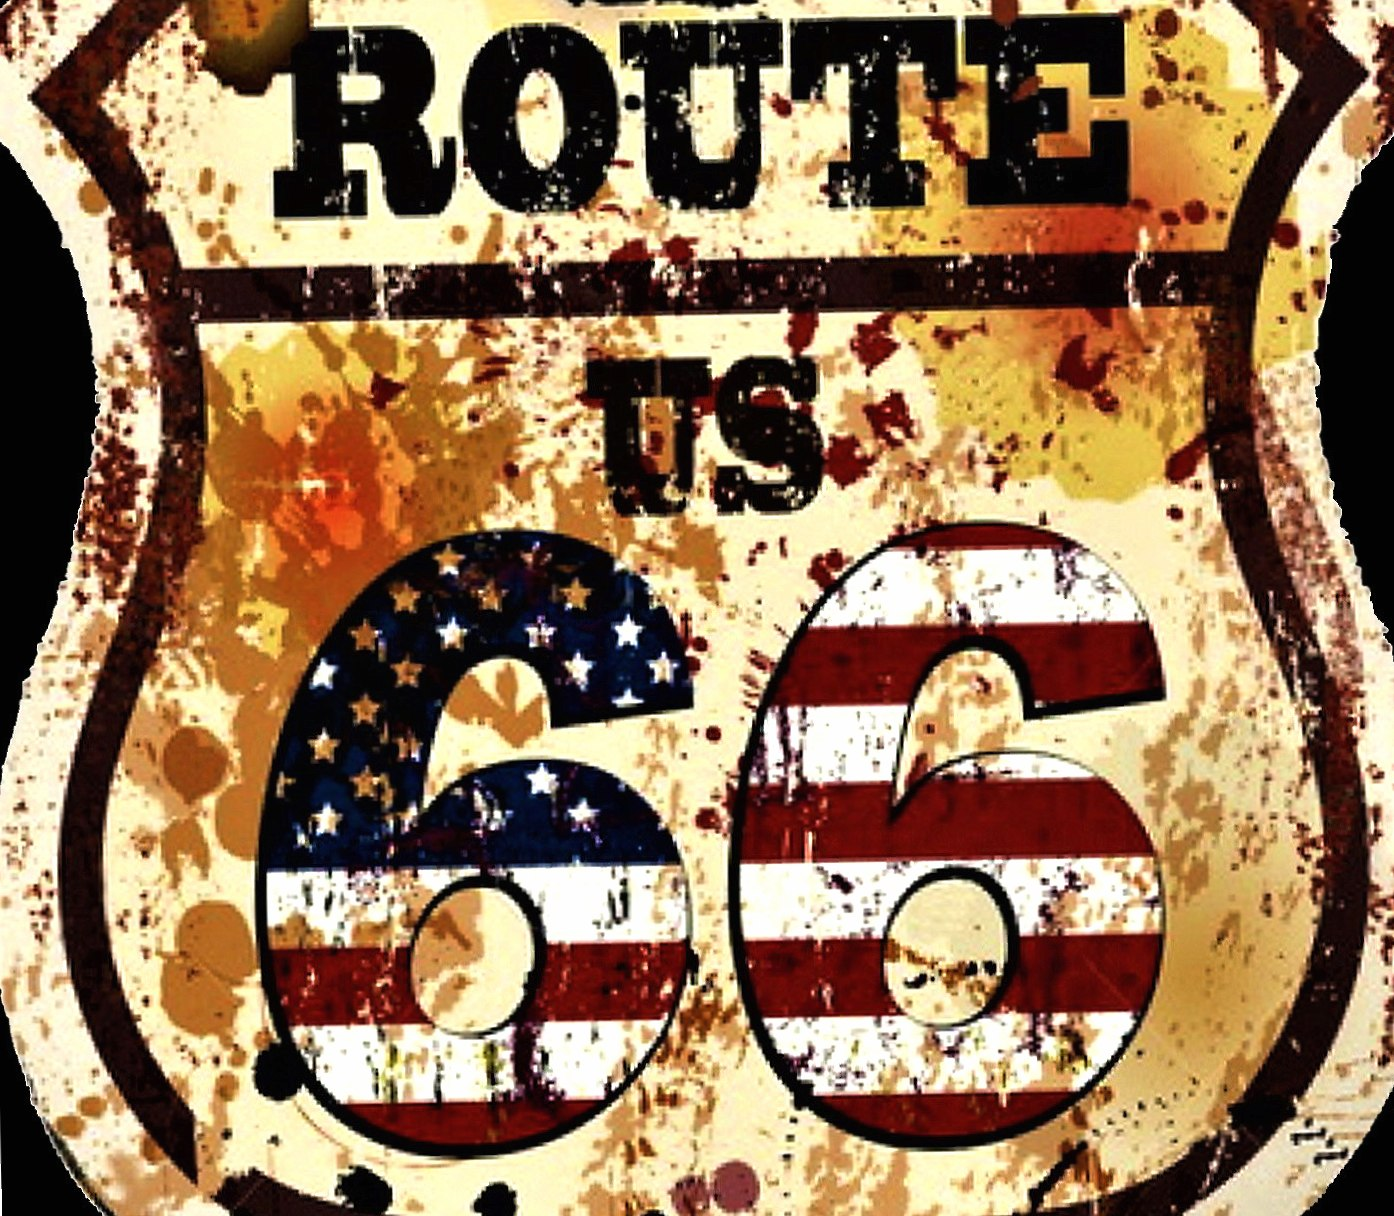 Route 66 Road Wallpaper Hd Download